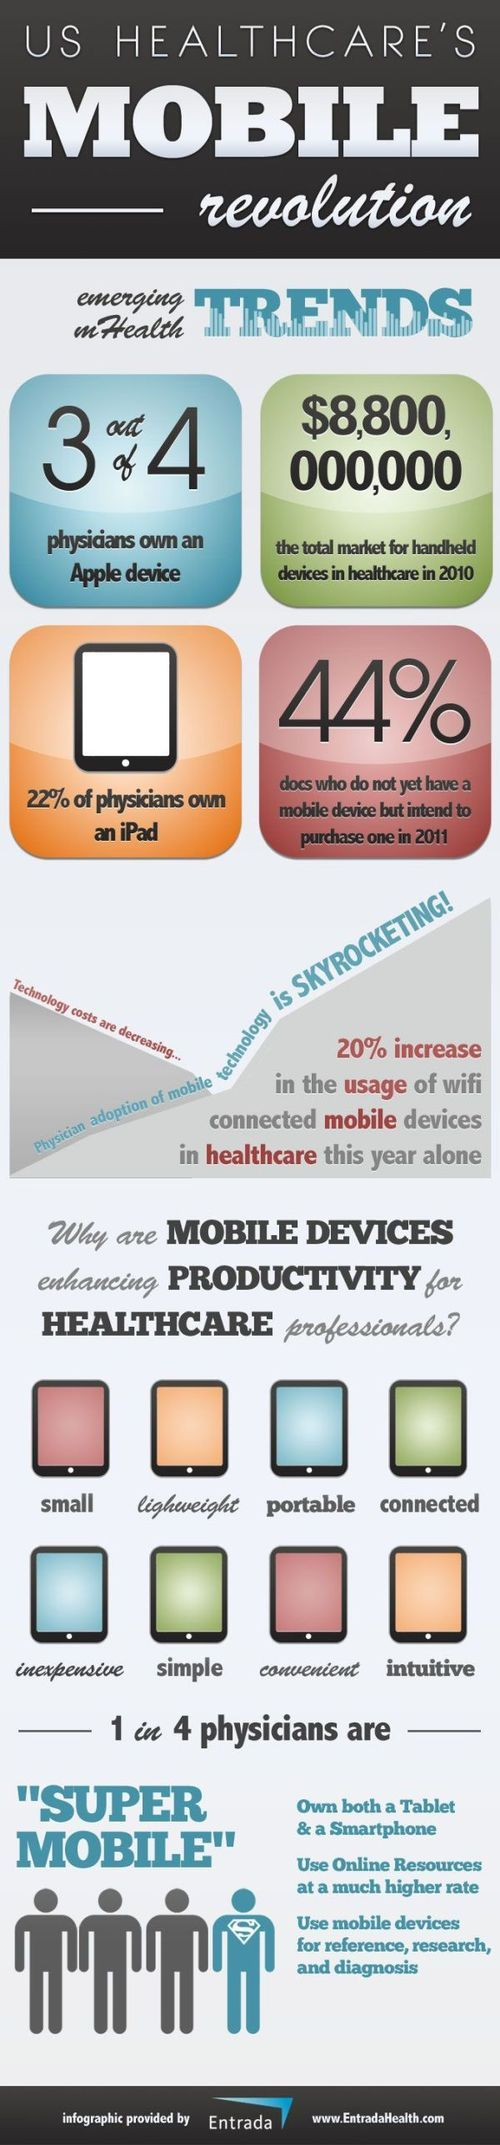 The Healthcare mobile revolution